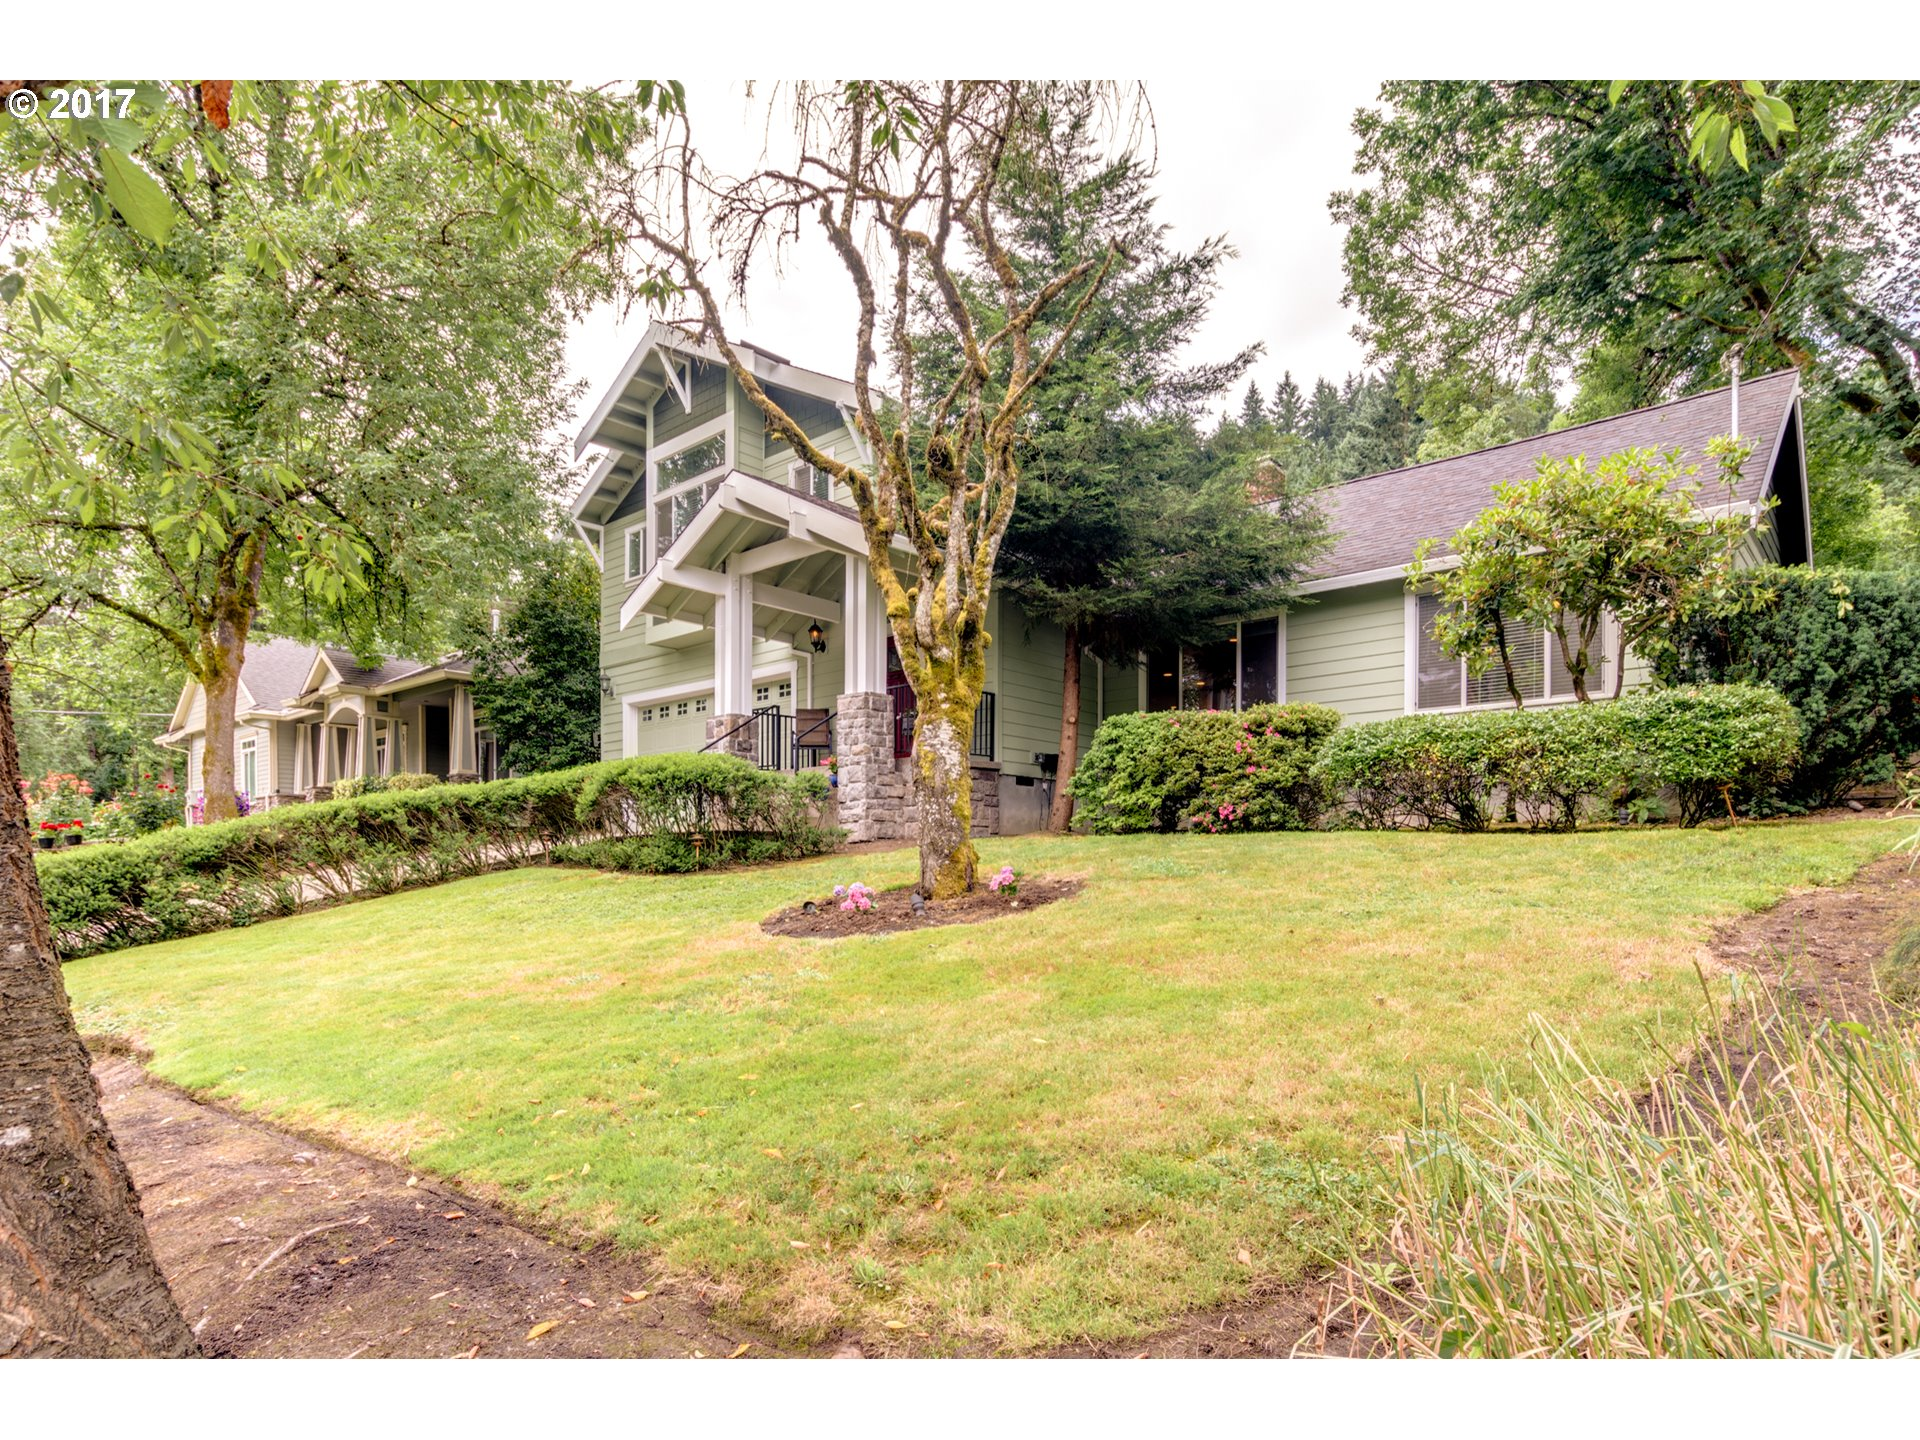 18575 Lower Midhill DR, West Linn, OR 97068